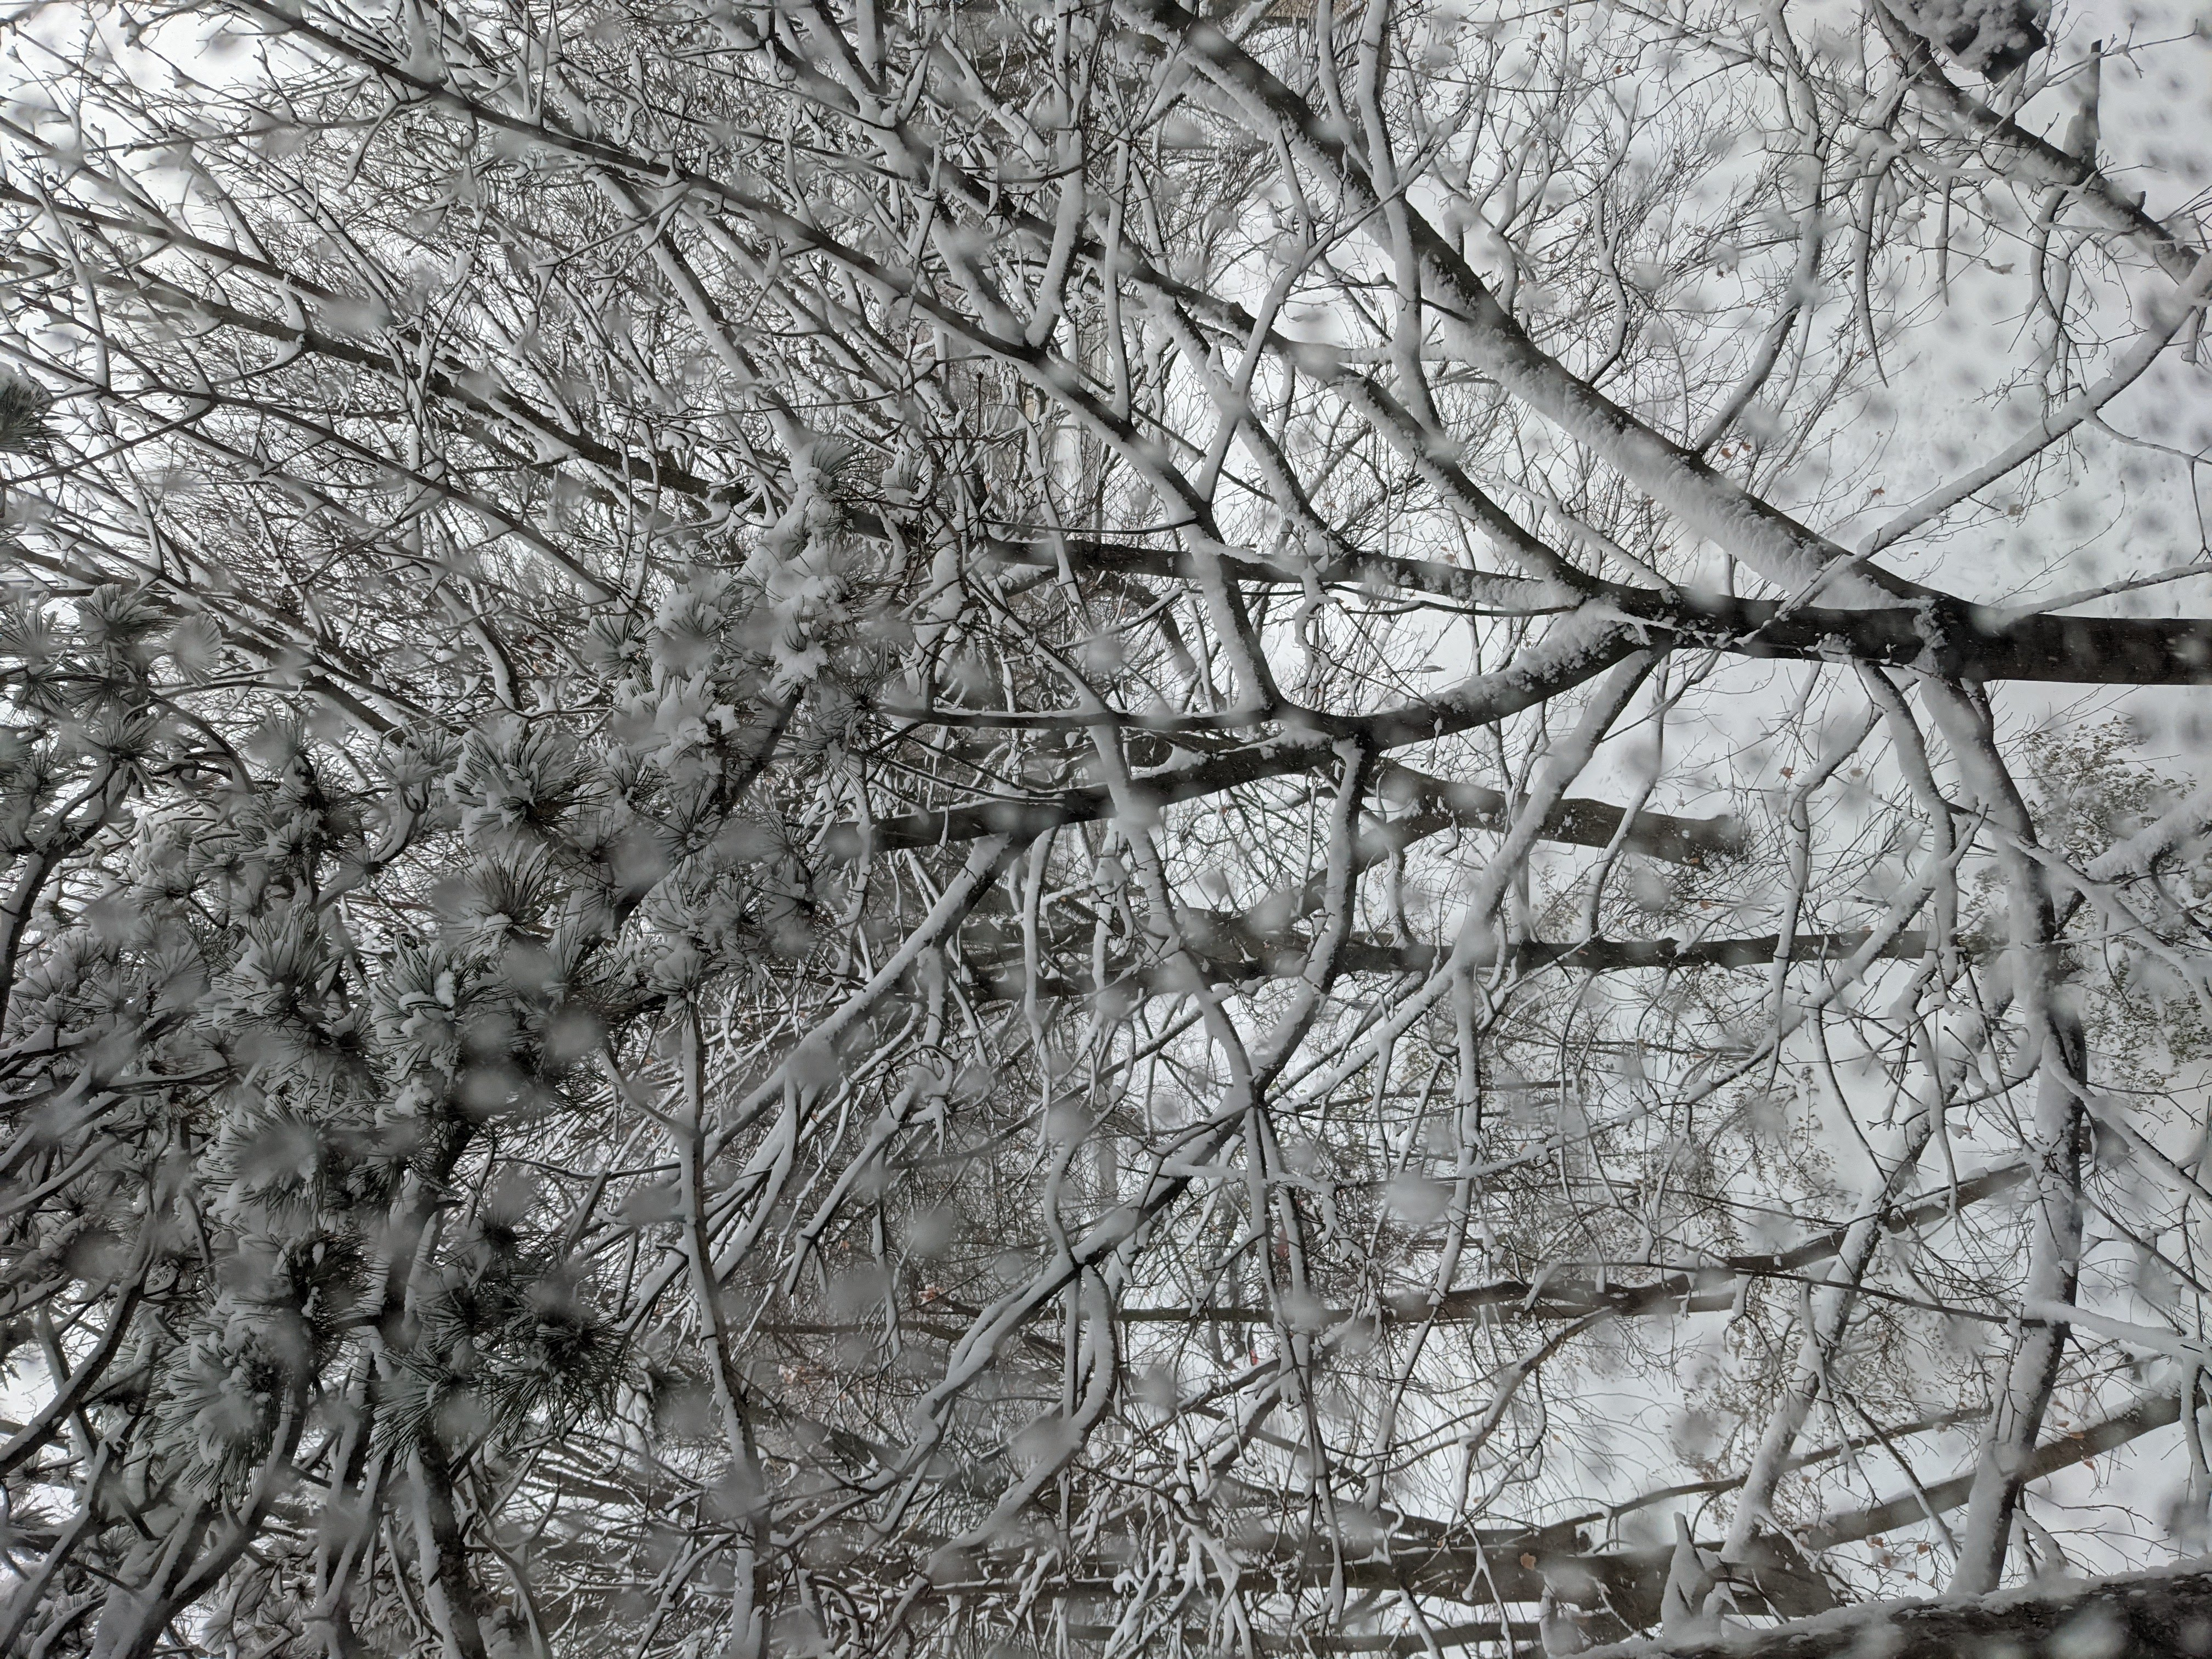 Picture taken out a window looking onto a lot of snowy branches.